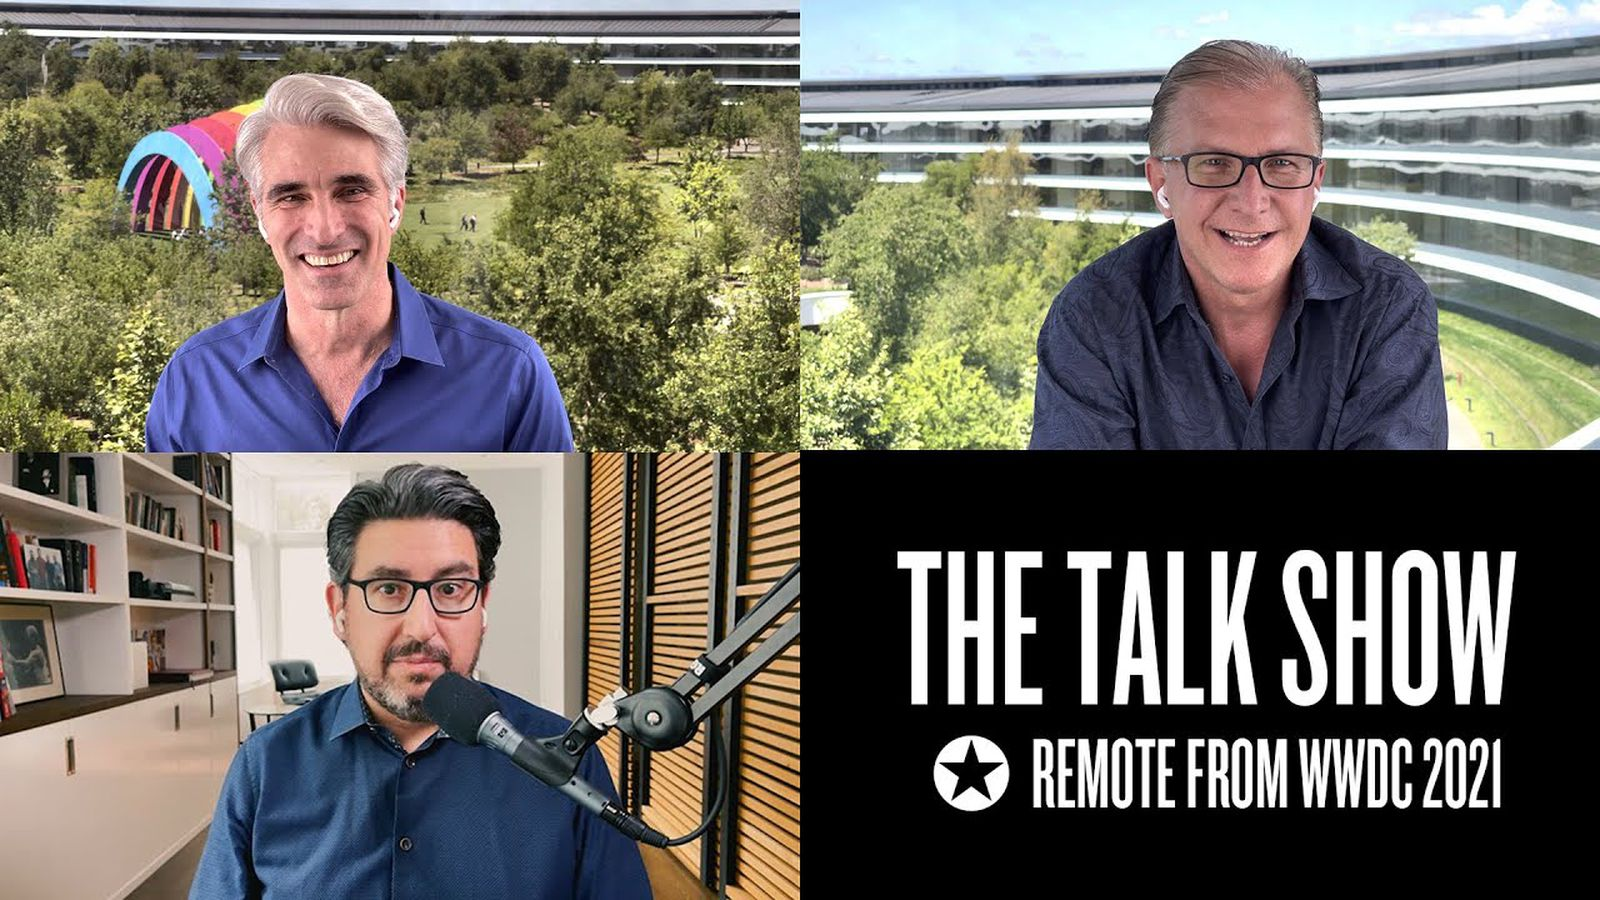 Craig Federighi and Greg Joswiak Discuss iPadOS 15, macOS Monterey, Privacy, Shortcuts on Mac, and More